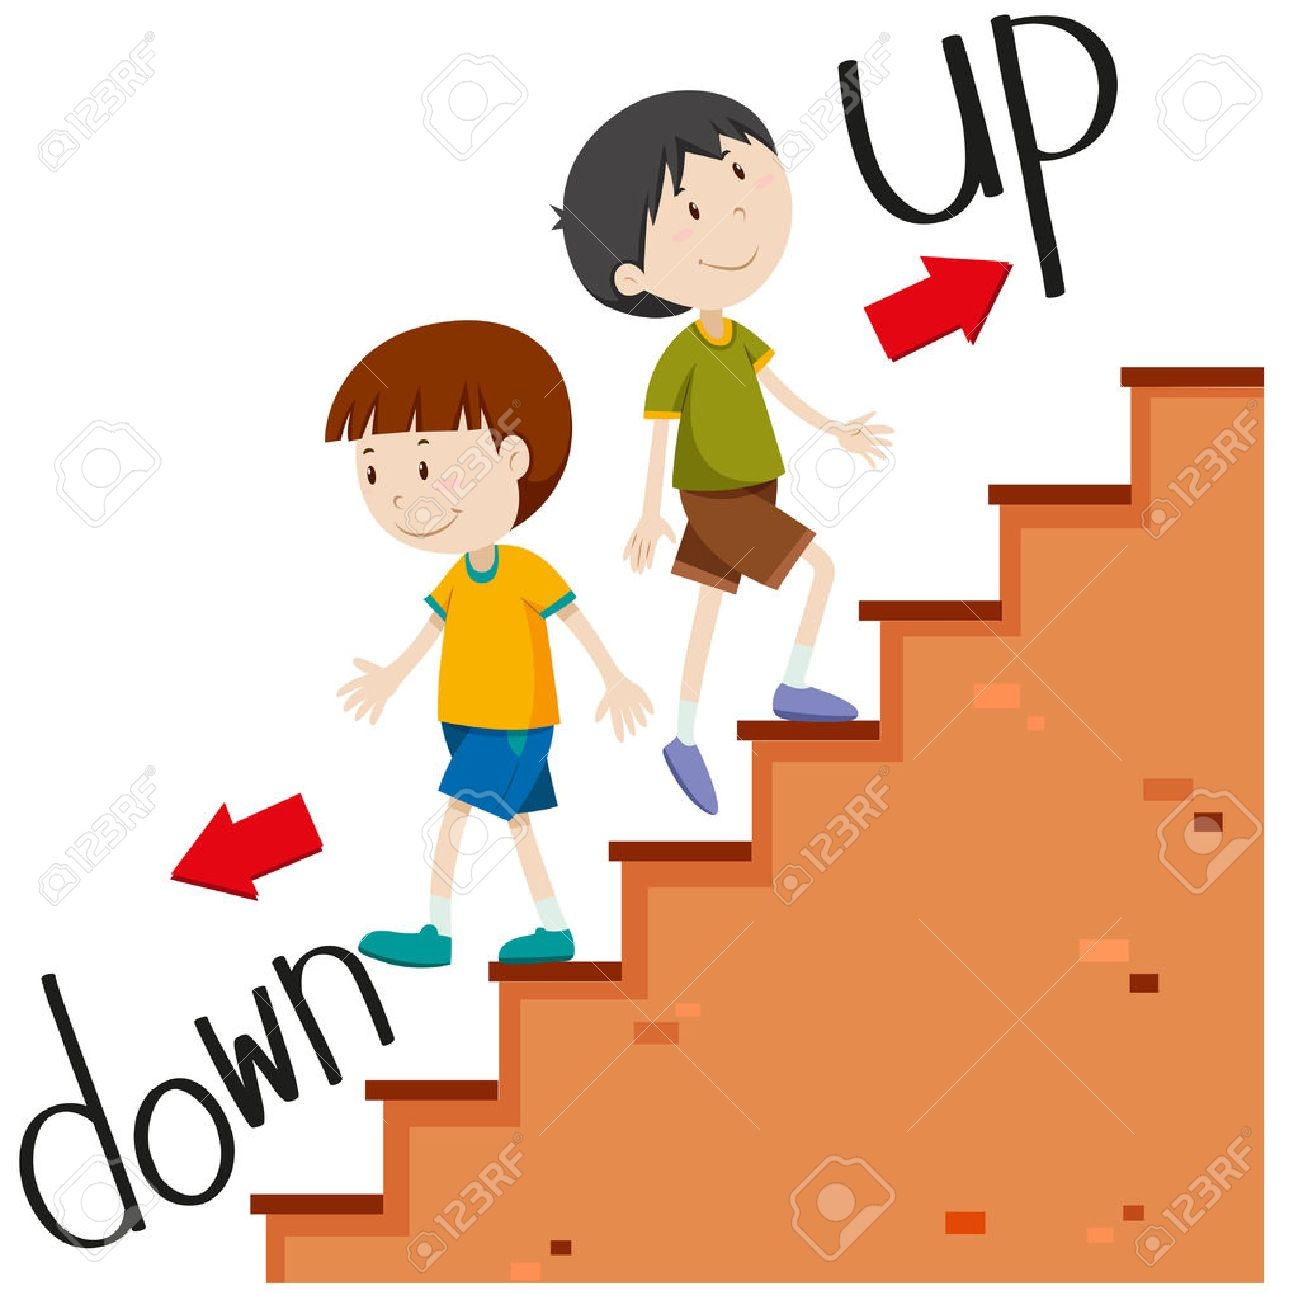 Boys walking up and down illustration.